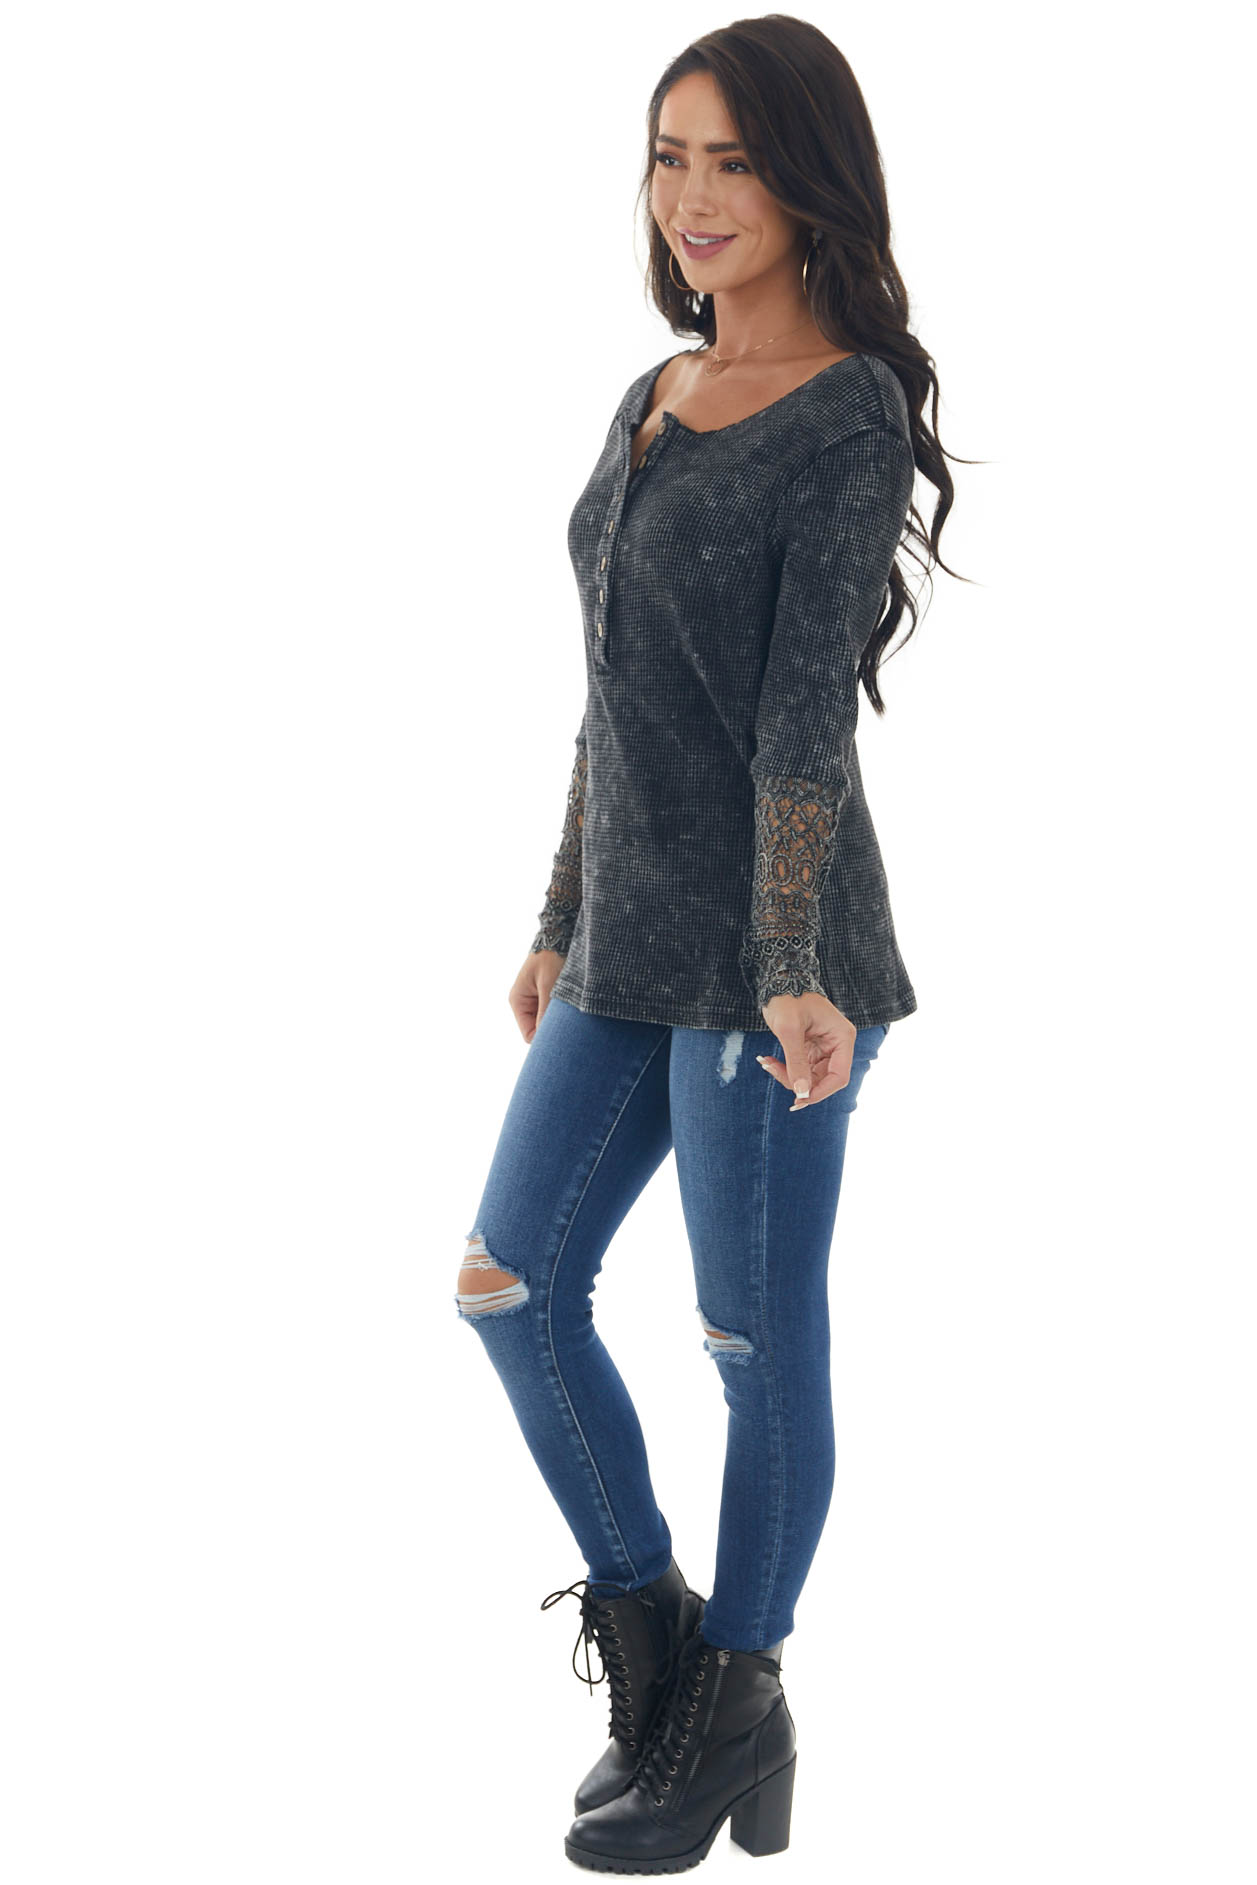 Black and Charcoal Thermal Knit Long Sleeve Top